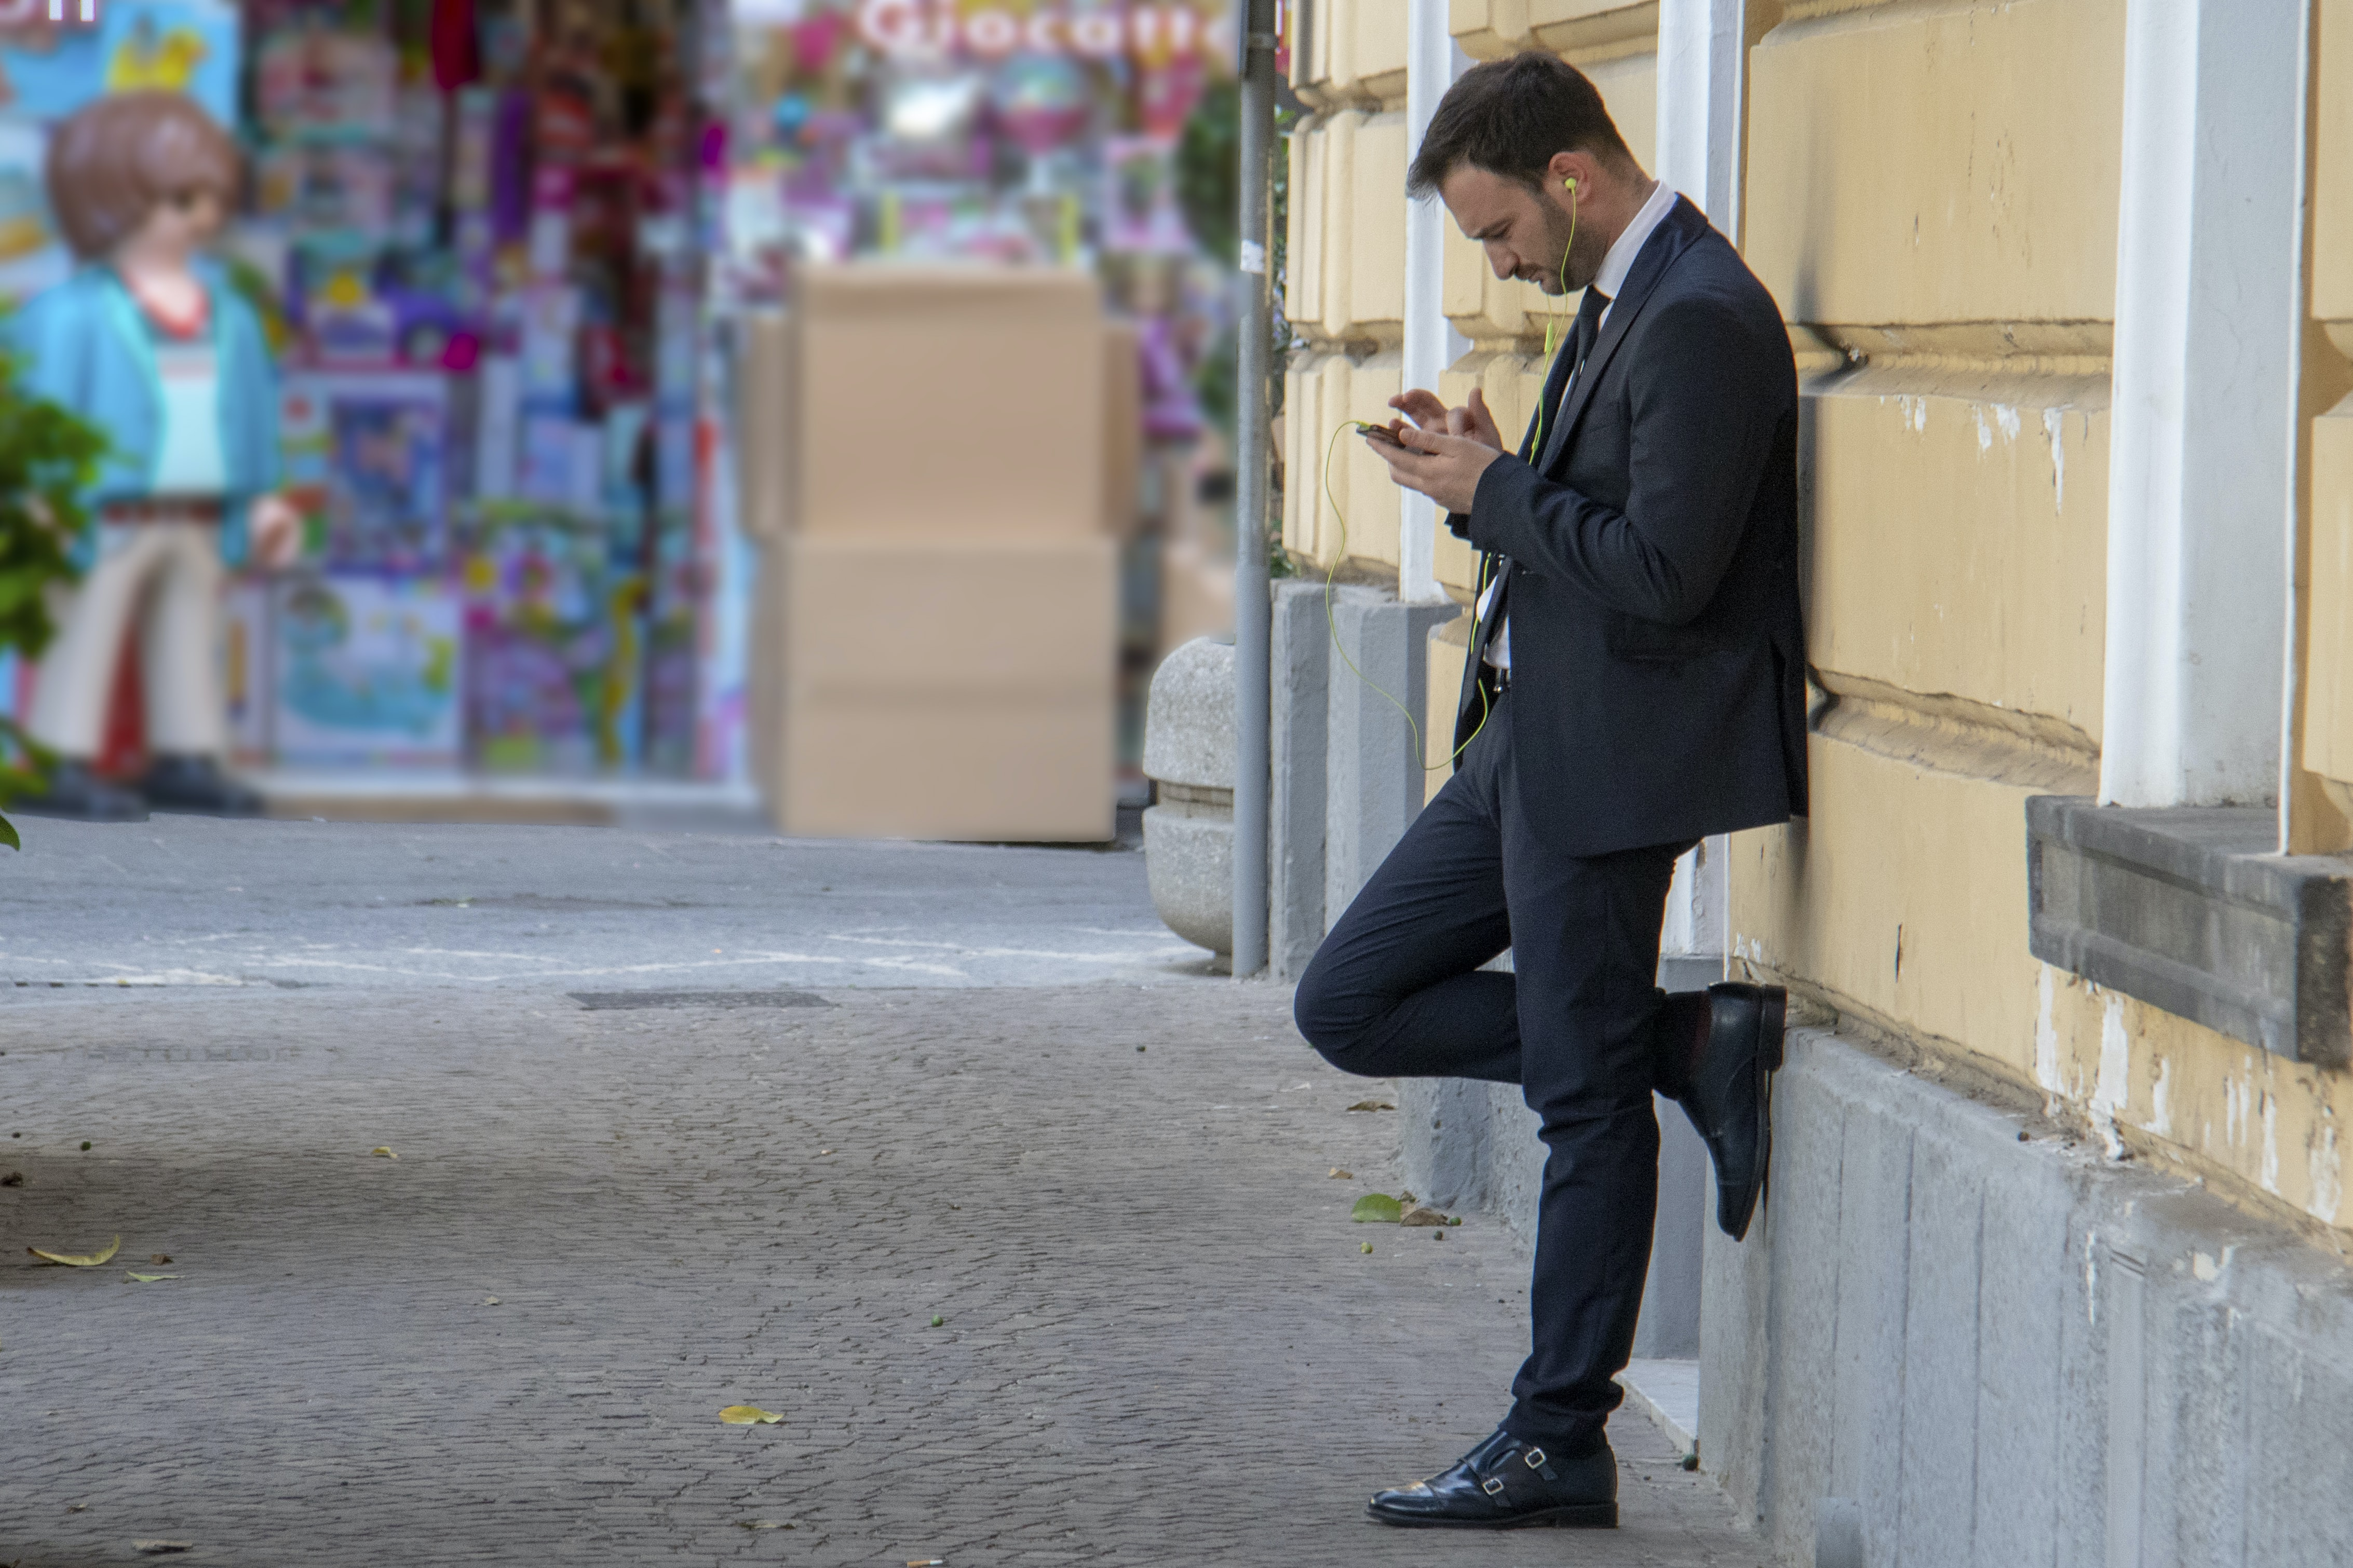 man holding his phone while leaning on building